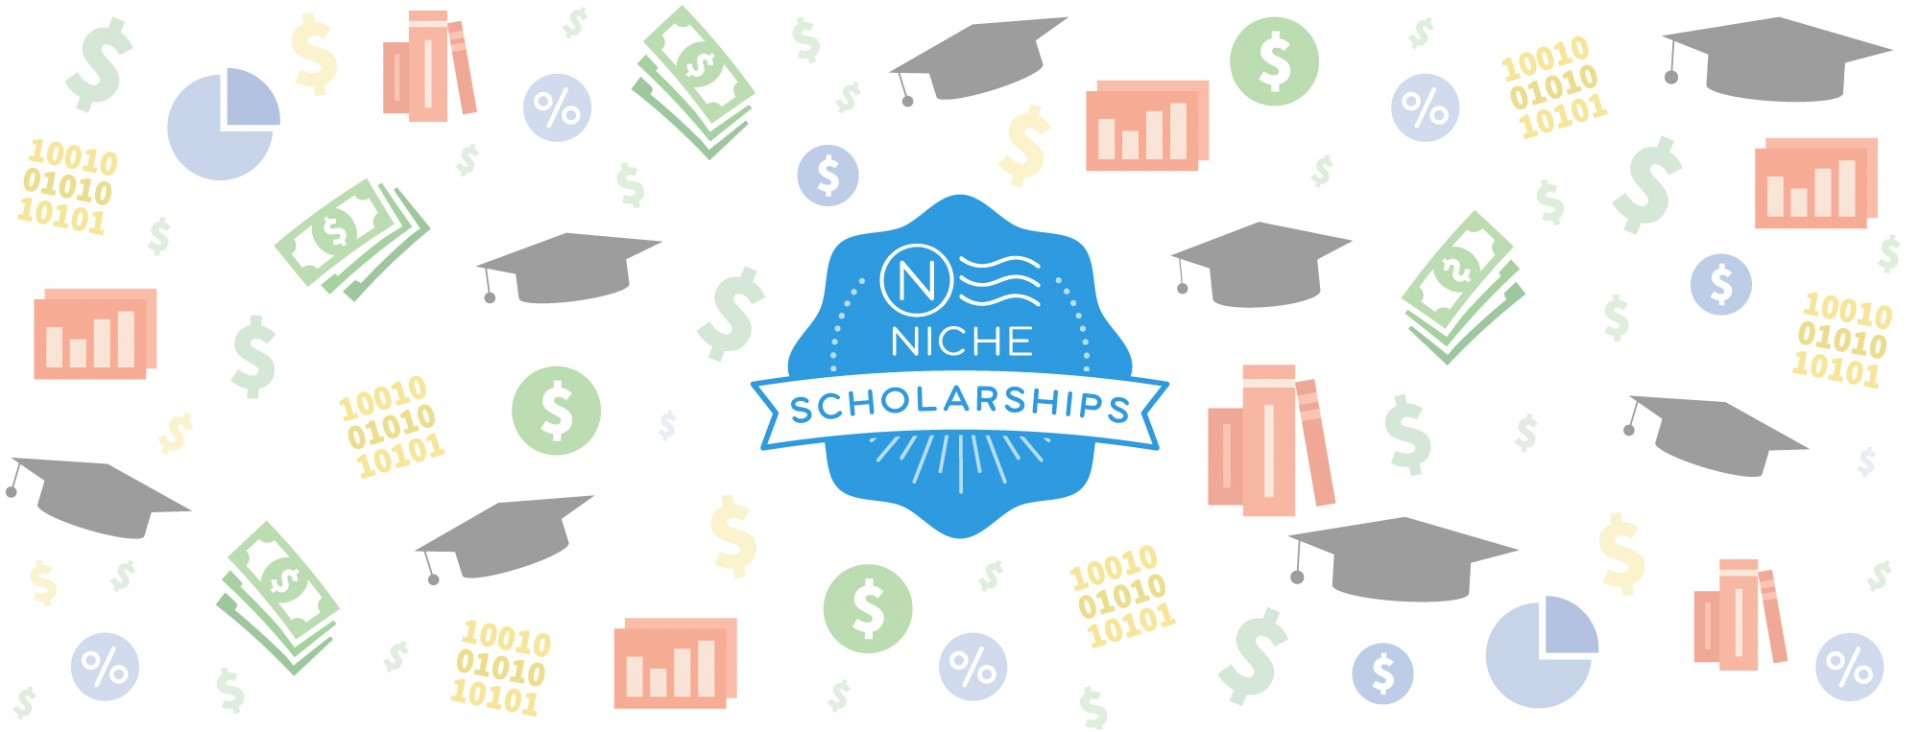 013 Essay Example No Wondrous Scholarship Scholarships For High School Seniors Niche Reddit Legit 1920